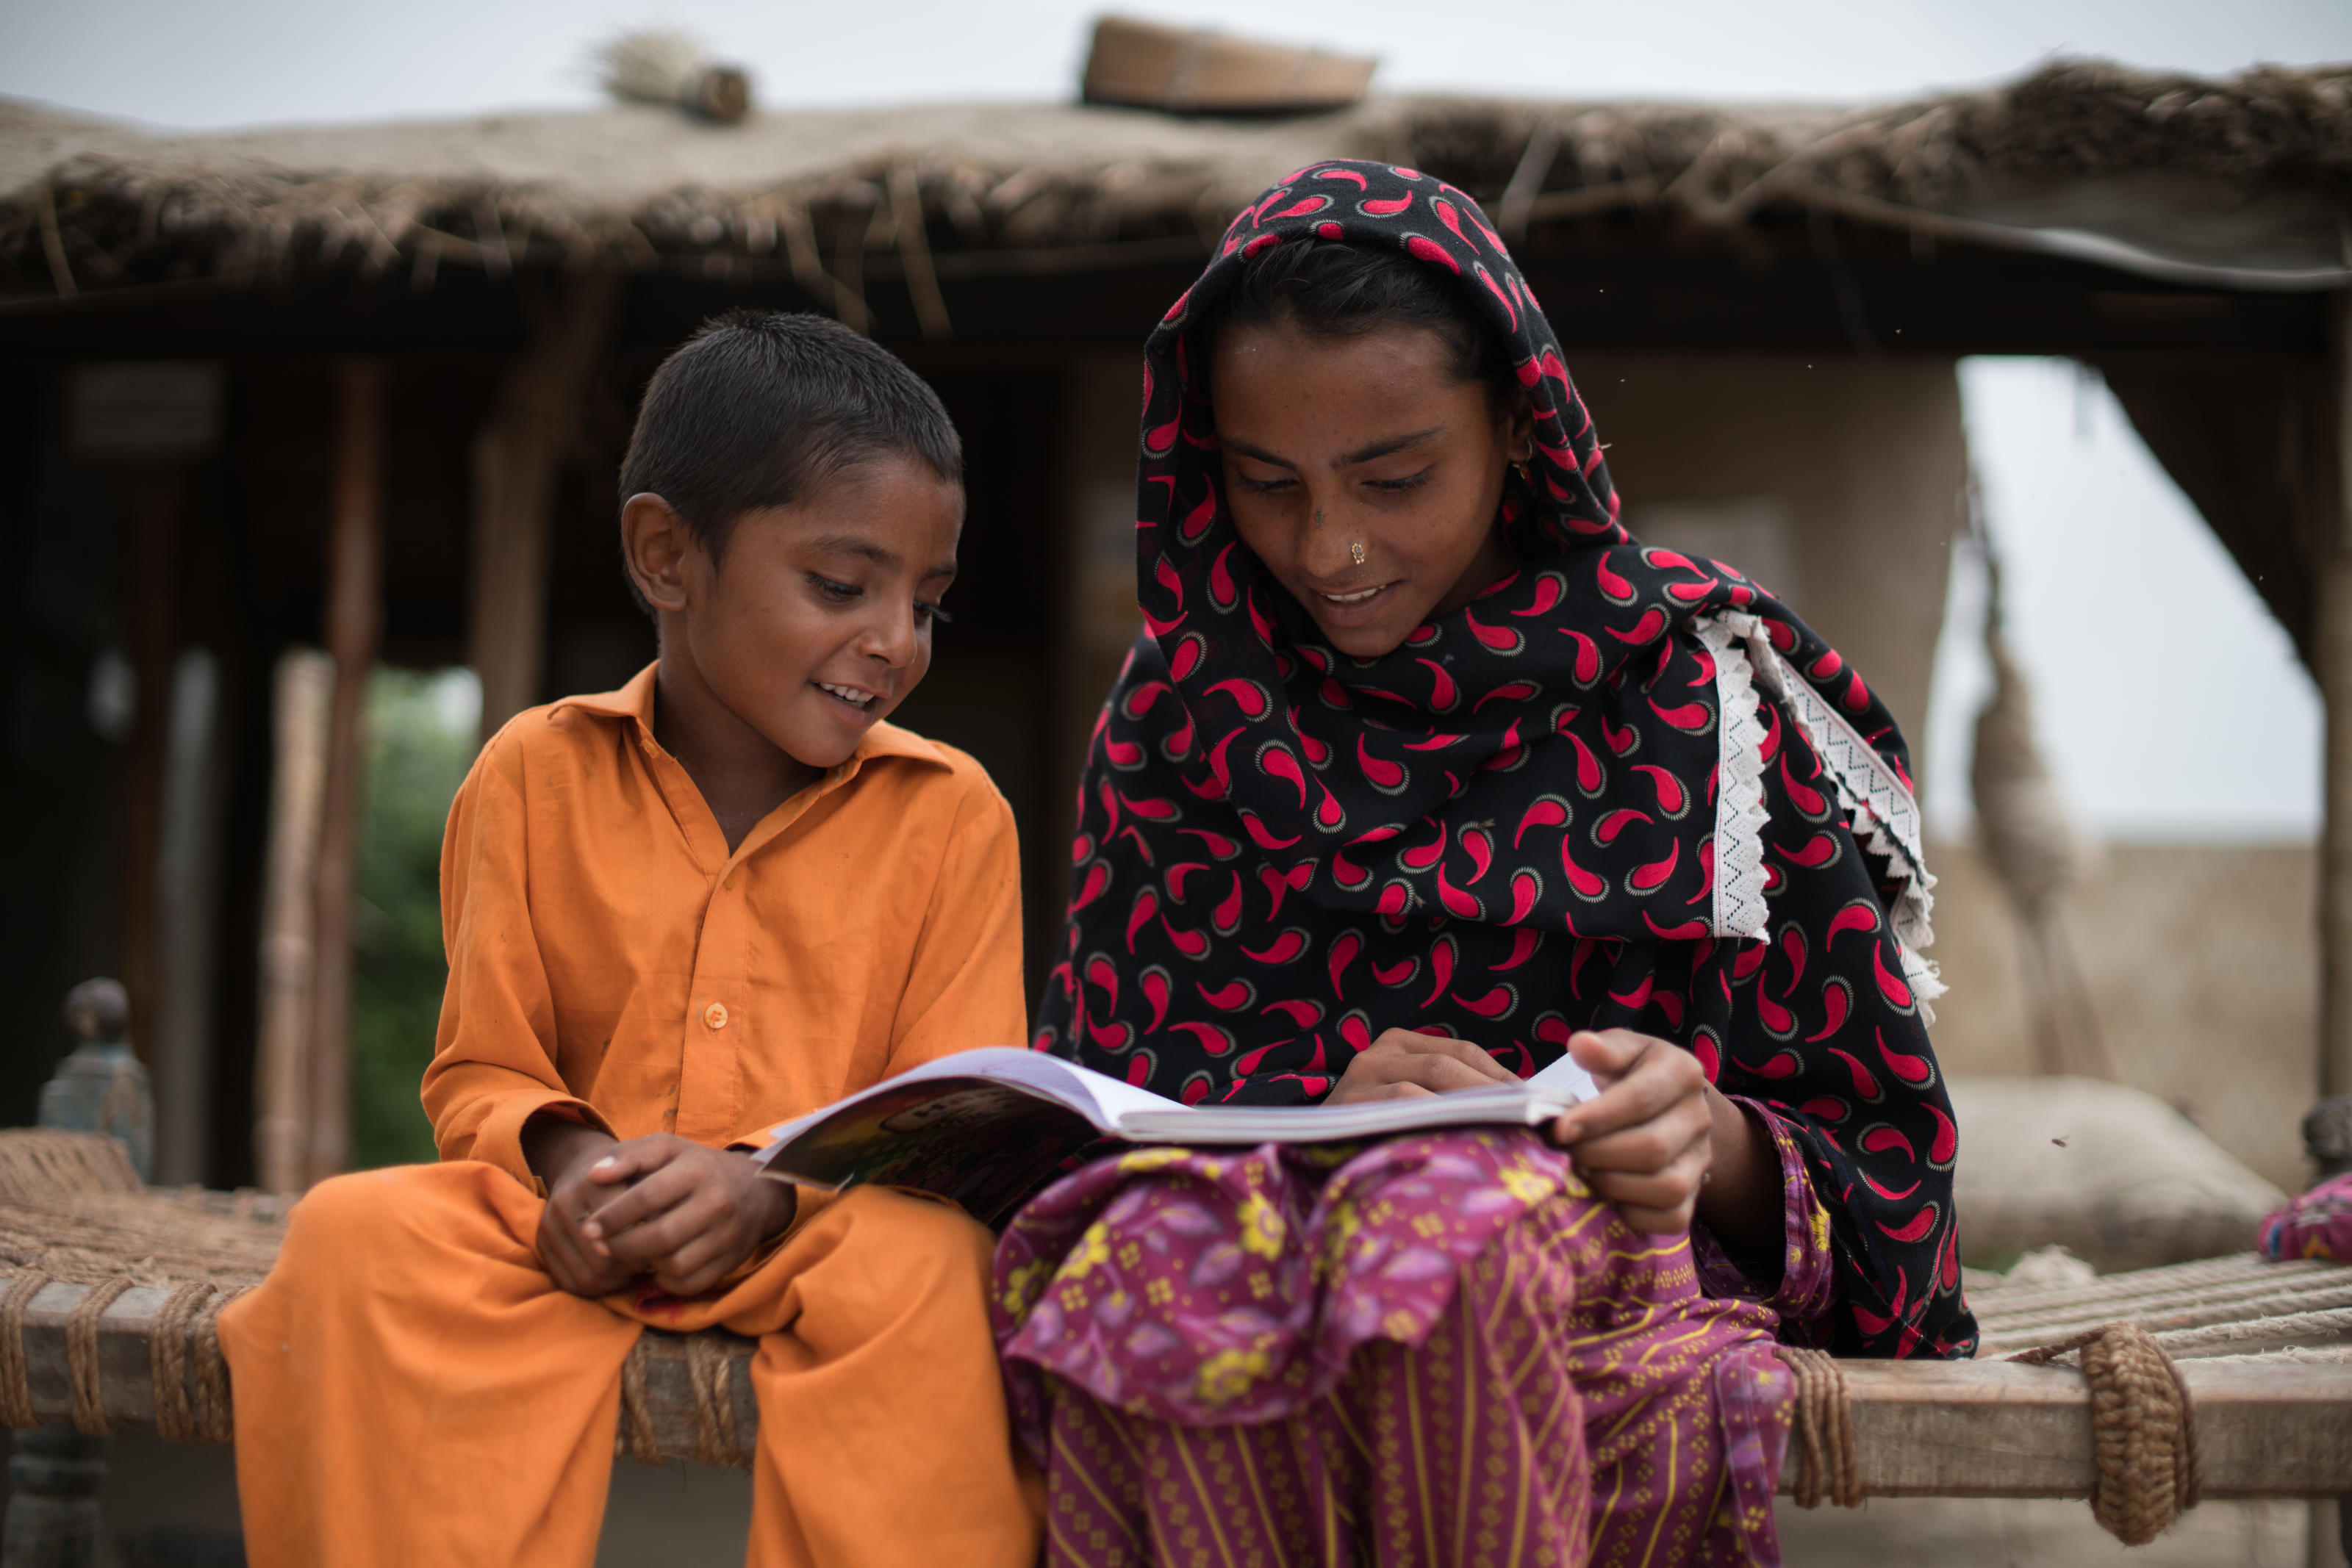 Sonia, 15, student of class 5, teaching her younger brother in her home in the village of Shevo Kolhi, Union Council Kadi Kazia, District Badin, Province Sindh, Pakistan, July 2017